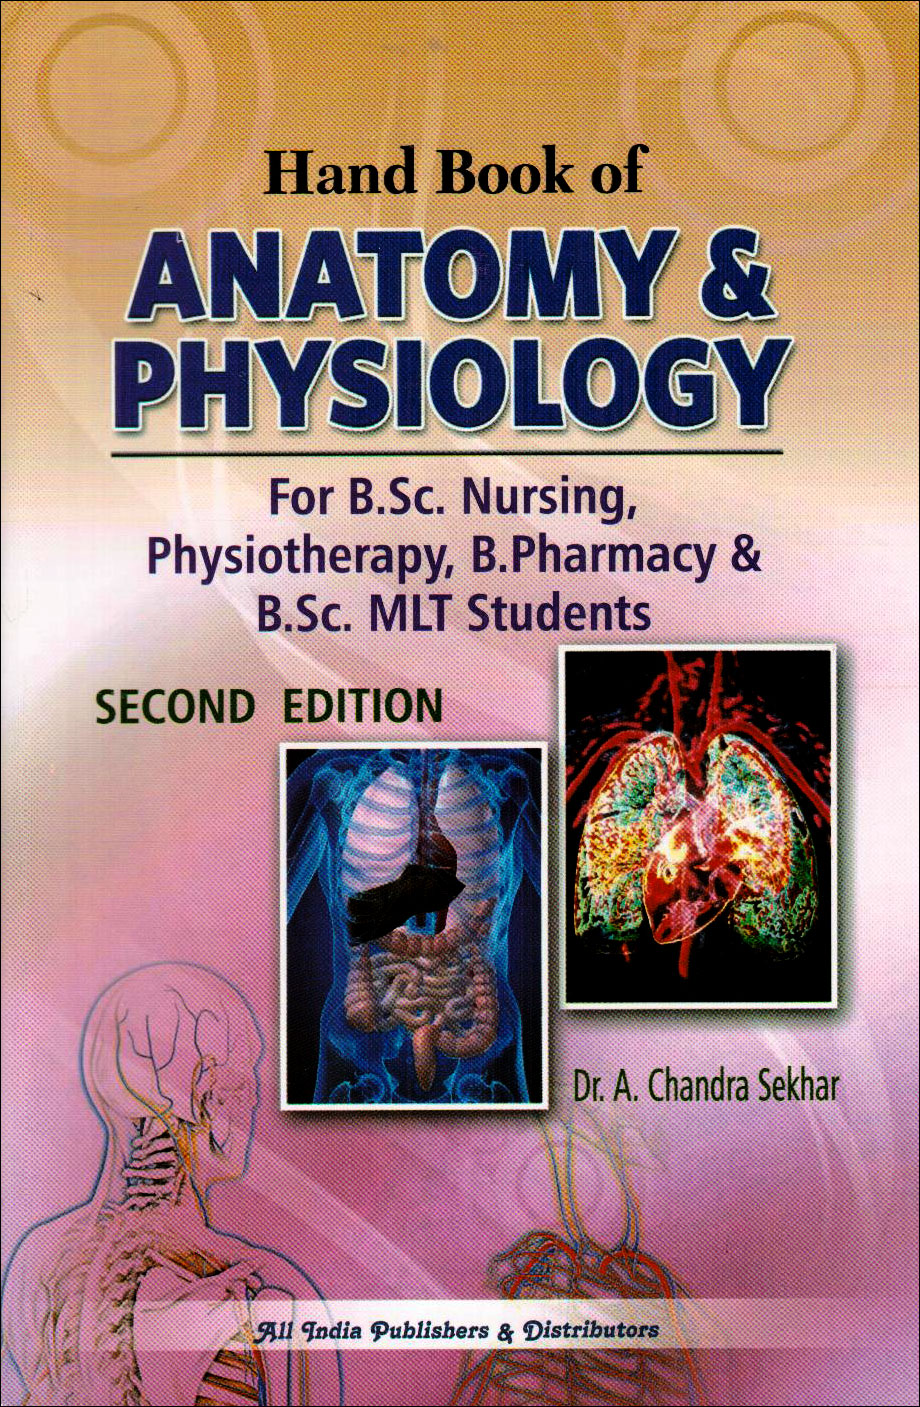 Handbook of Anatomy & Physiology, 2nd Edition, Dr. A. Chandra Sekhar ...